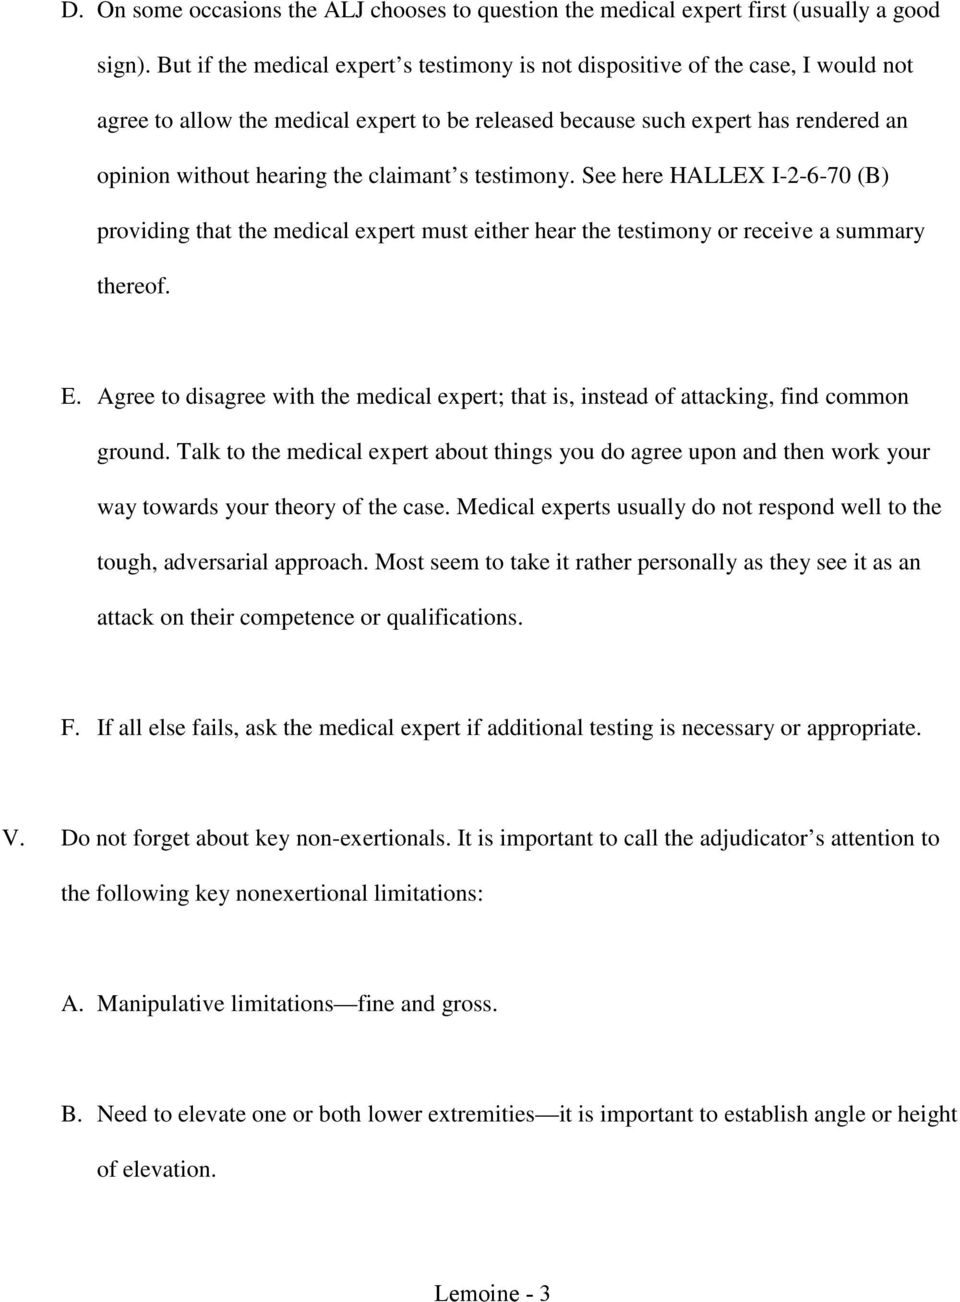 claimant s testimony. See here HALLEX I-2-6-70 (B) providing that the medical expert must either hear the testimony or receive a summary thereof. E.